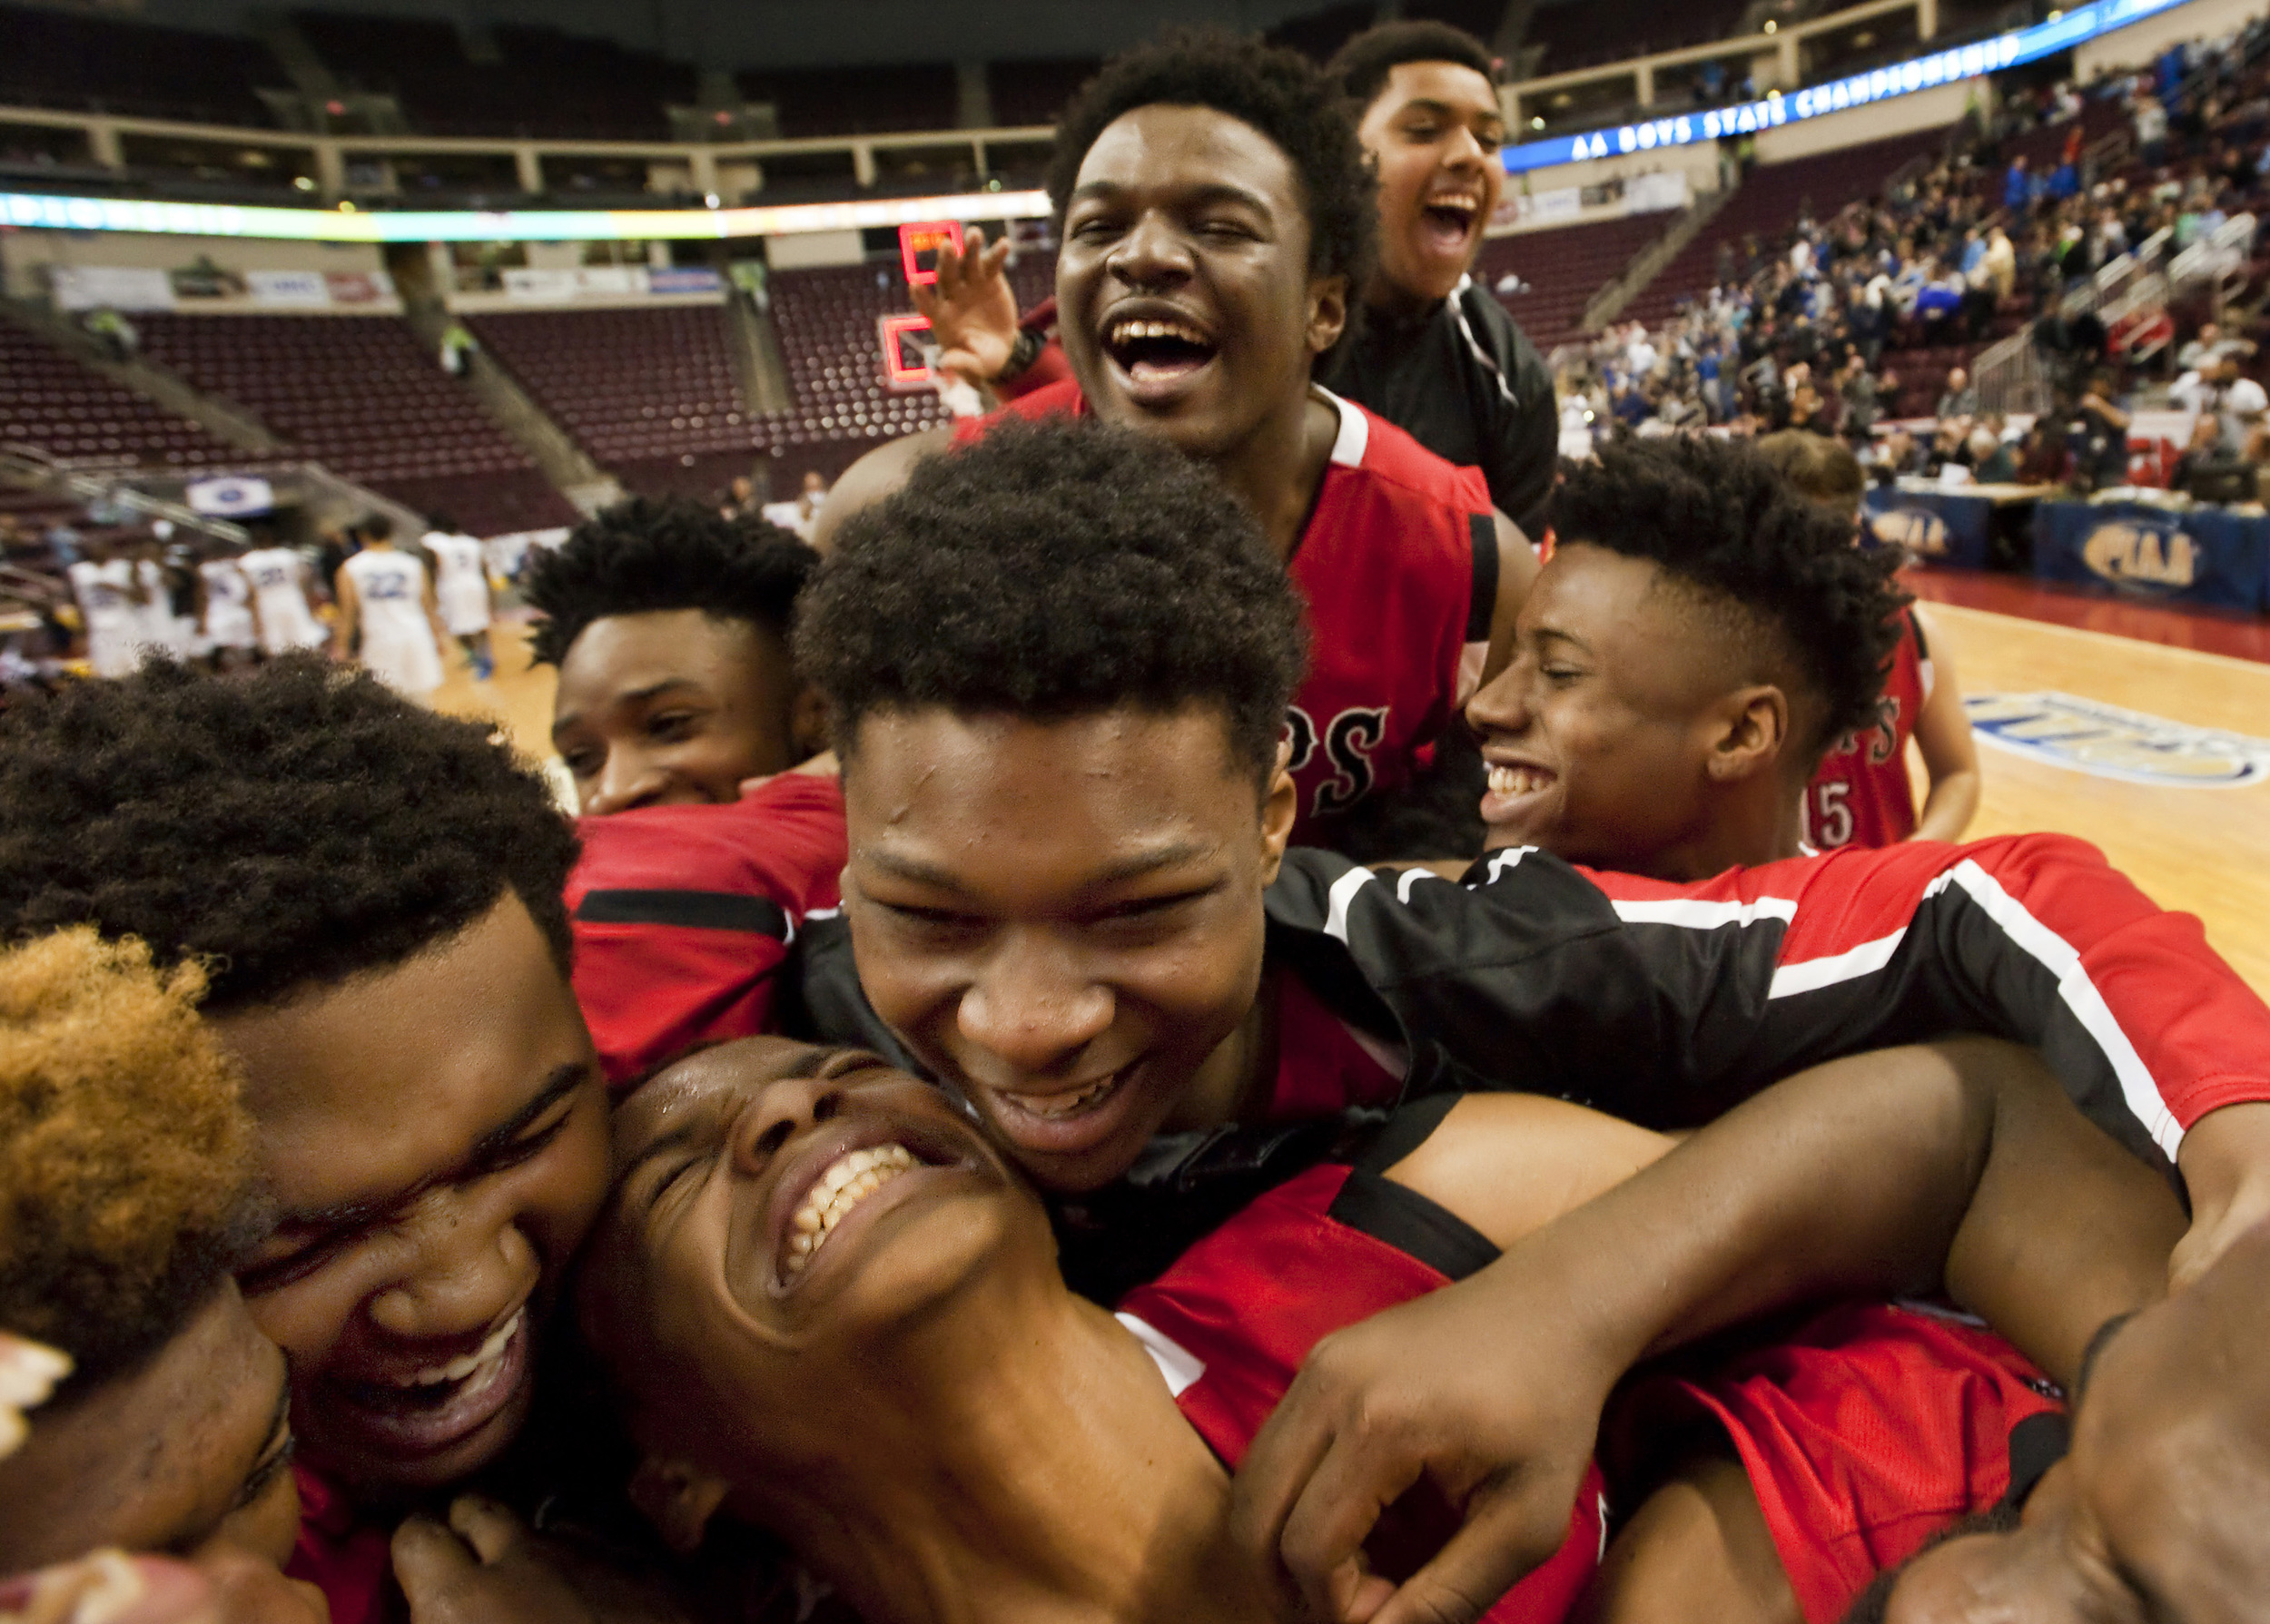 Aliquippa celebrates their win over Mastery Charter North-Pickett during the PIAA Class AA boys basketball championship on Saturday, March 19, 2016 at the Giant Center in Hershey, Pa. Aliquippa won 68-49.